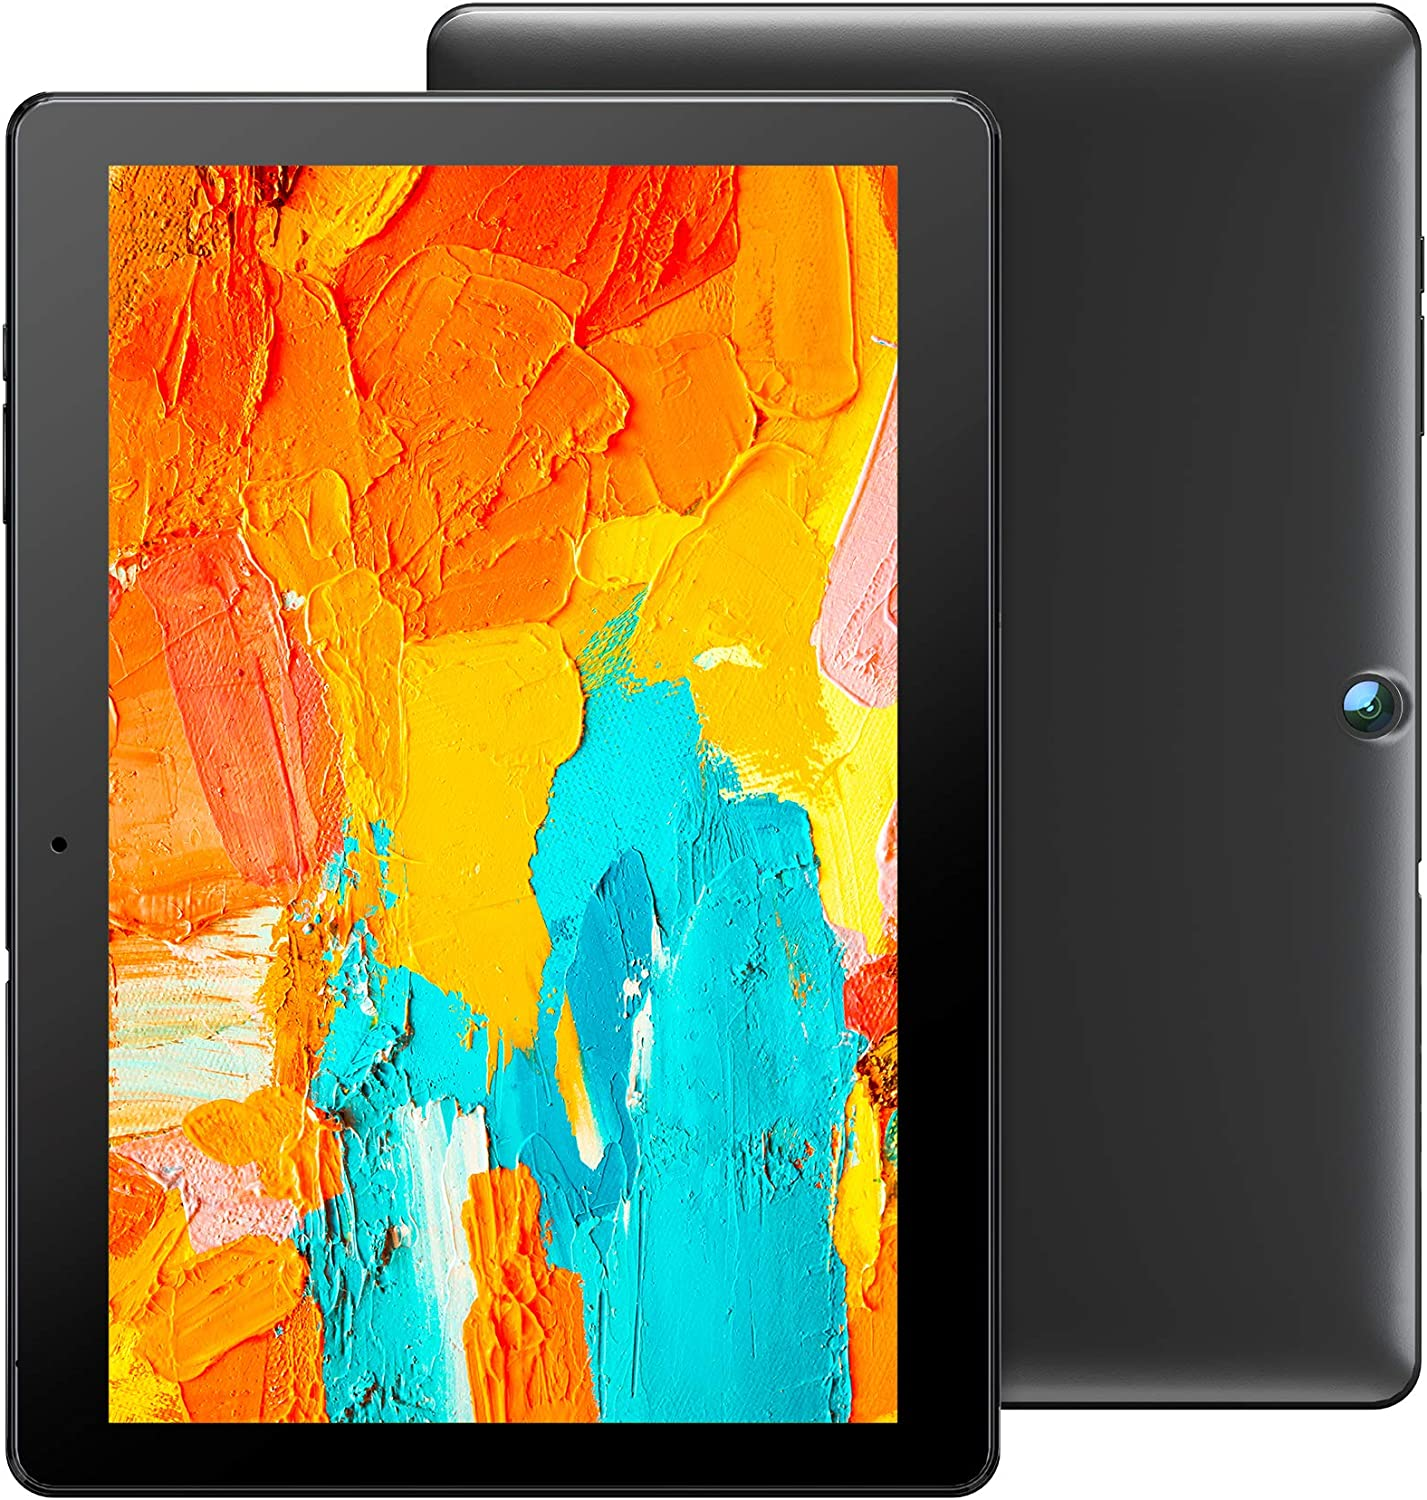 Voger PriorPad X100 Tablet 10 inch, Android 10.0, 2GB RAM 32GB Storage, 2MP+8MP Dual Camera, 1280x800 IPS HD Display, Dual-WiFi Support, Bluetooth, Google GMS Certified, Quad-Core Processor (Black)